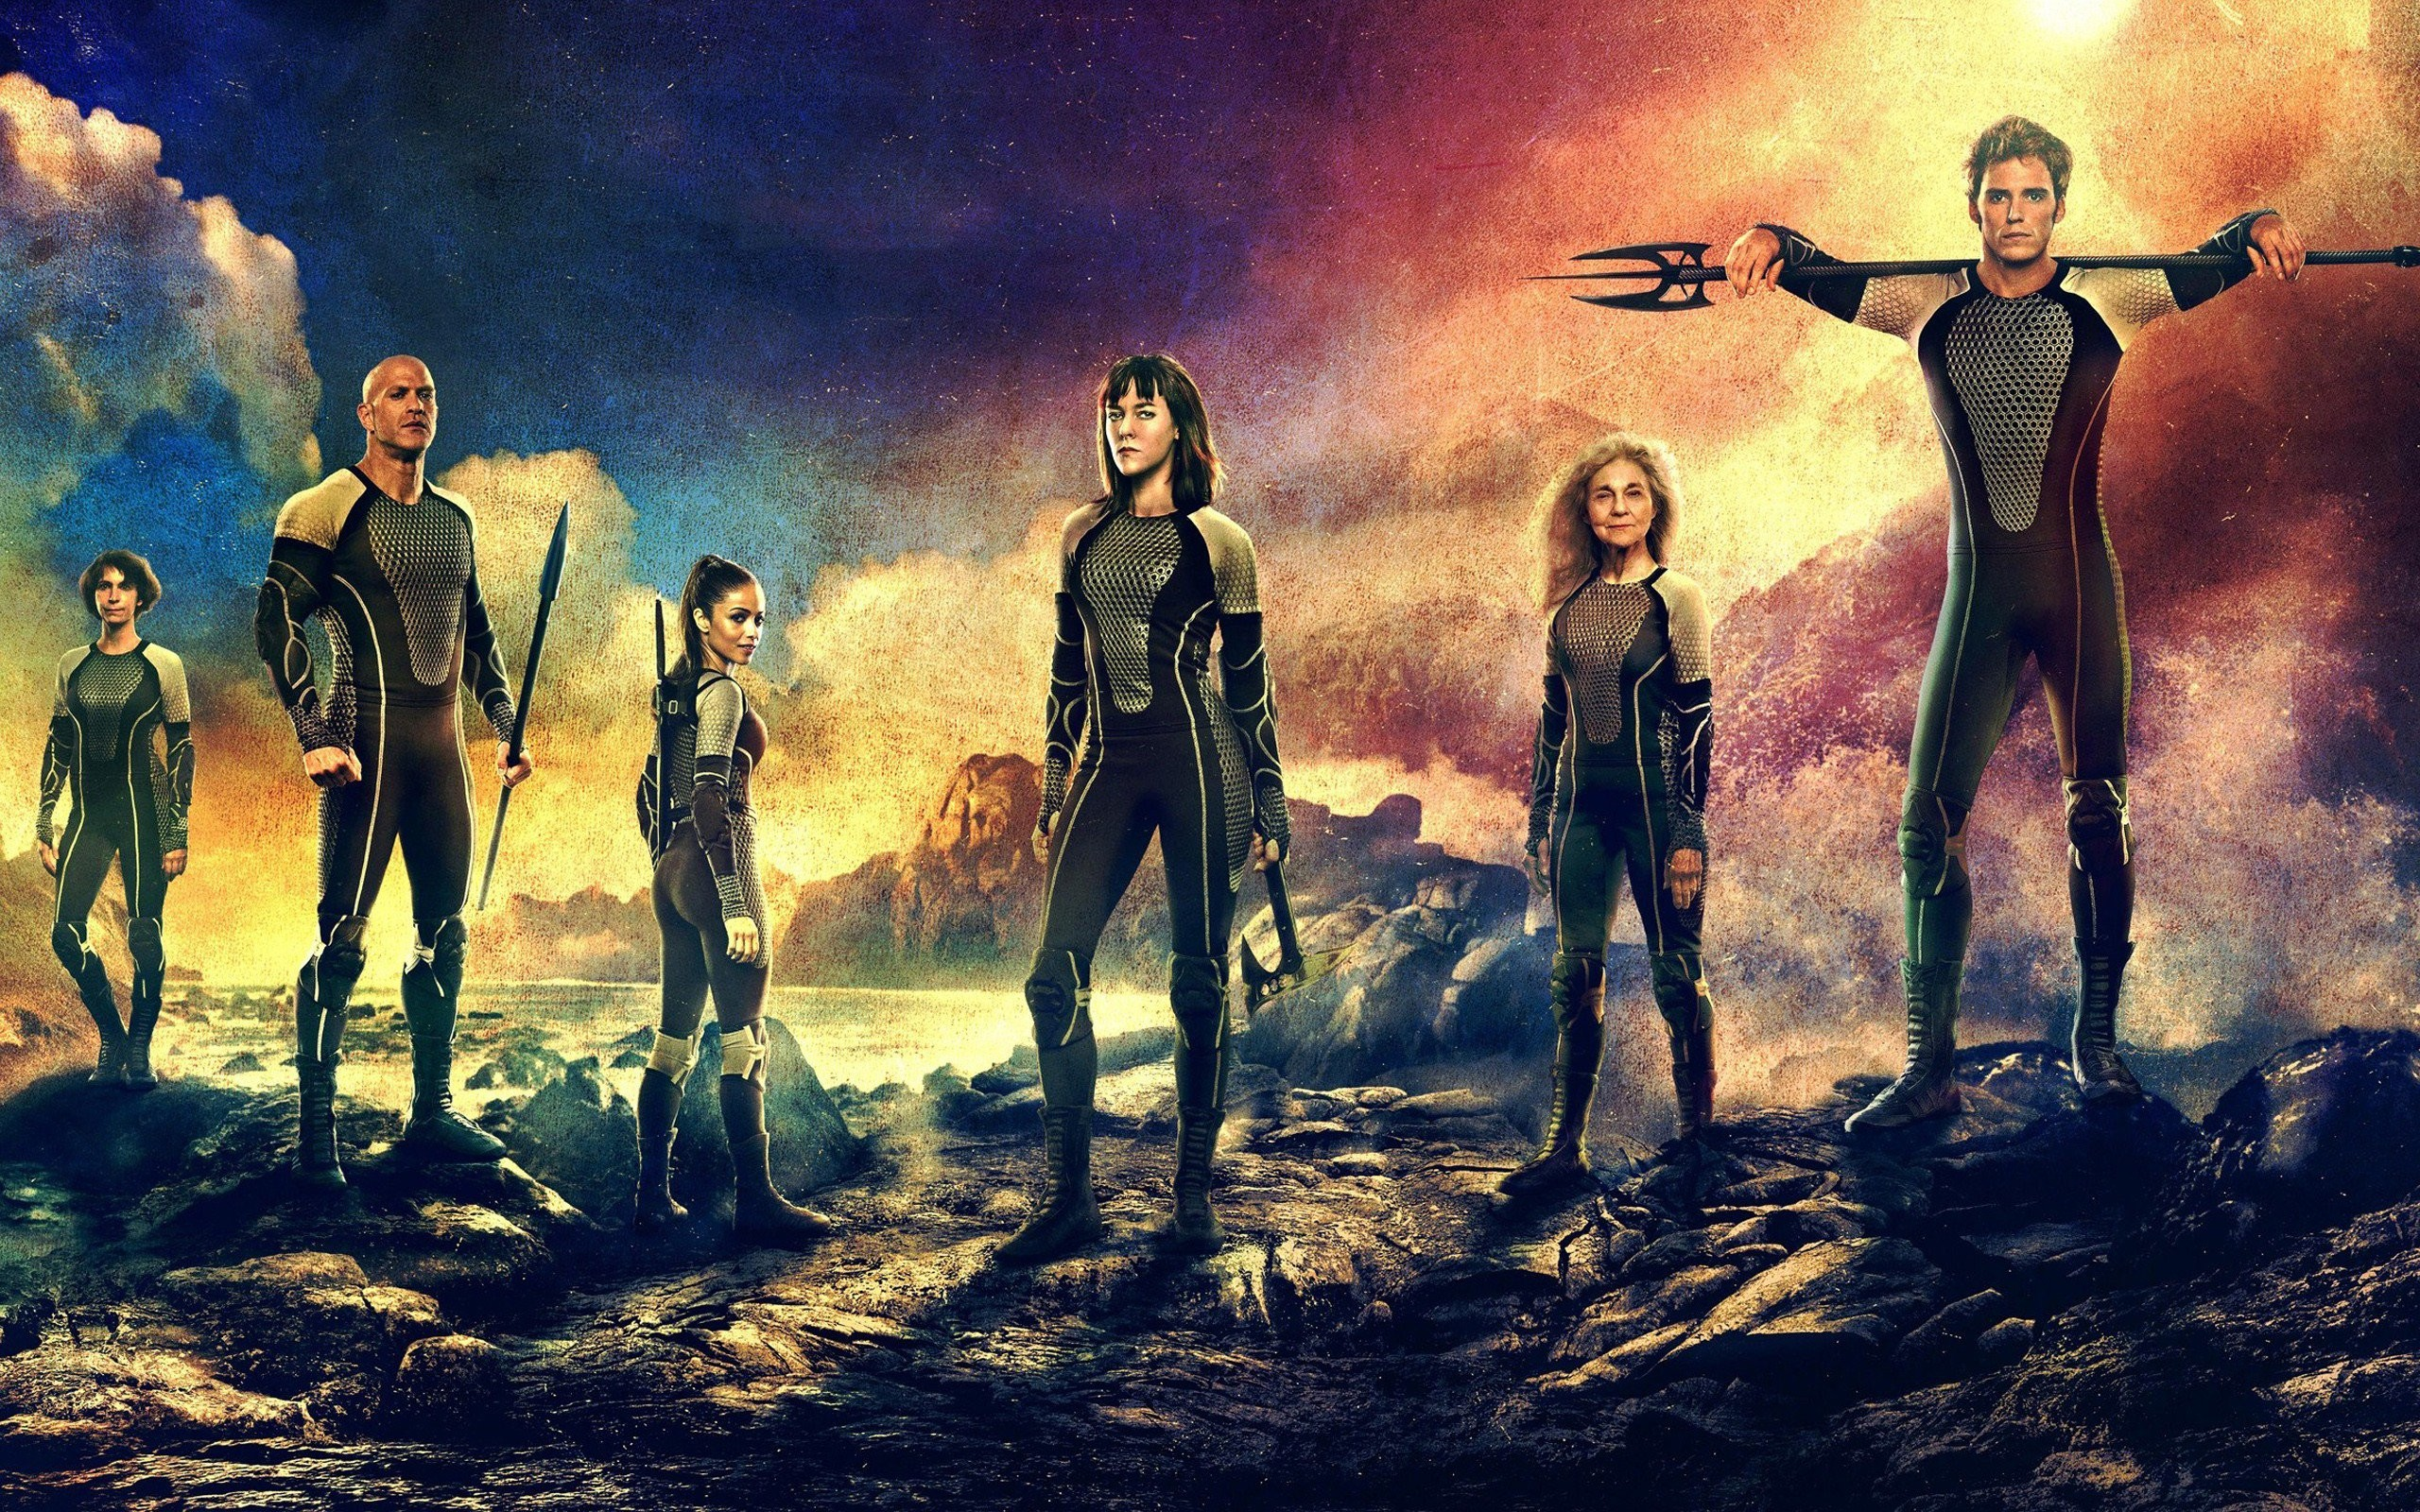 2560x1600 The Hunger Games Catching Fire Movie Wallpaper - Image #4589 -